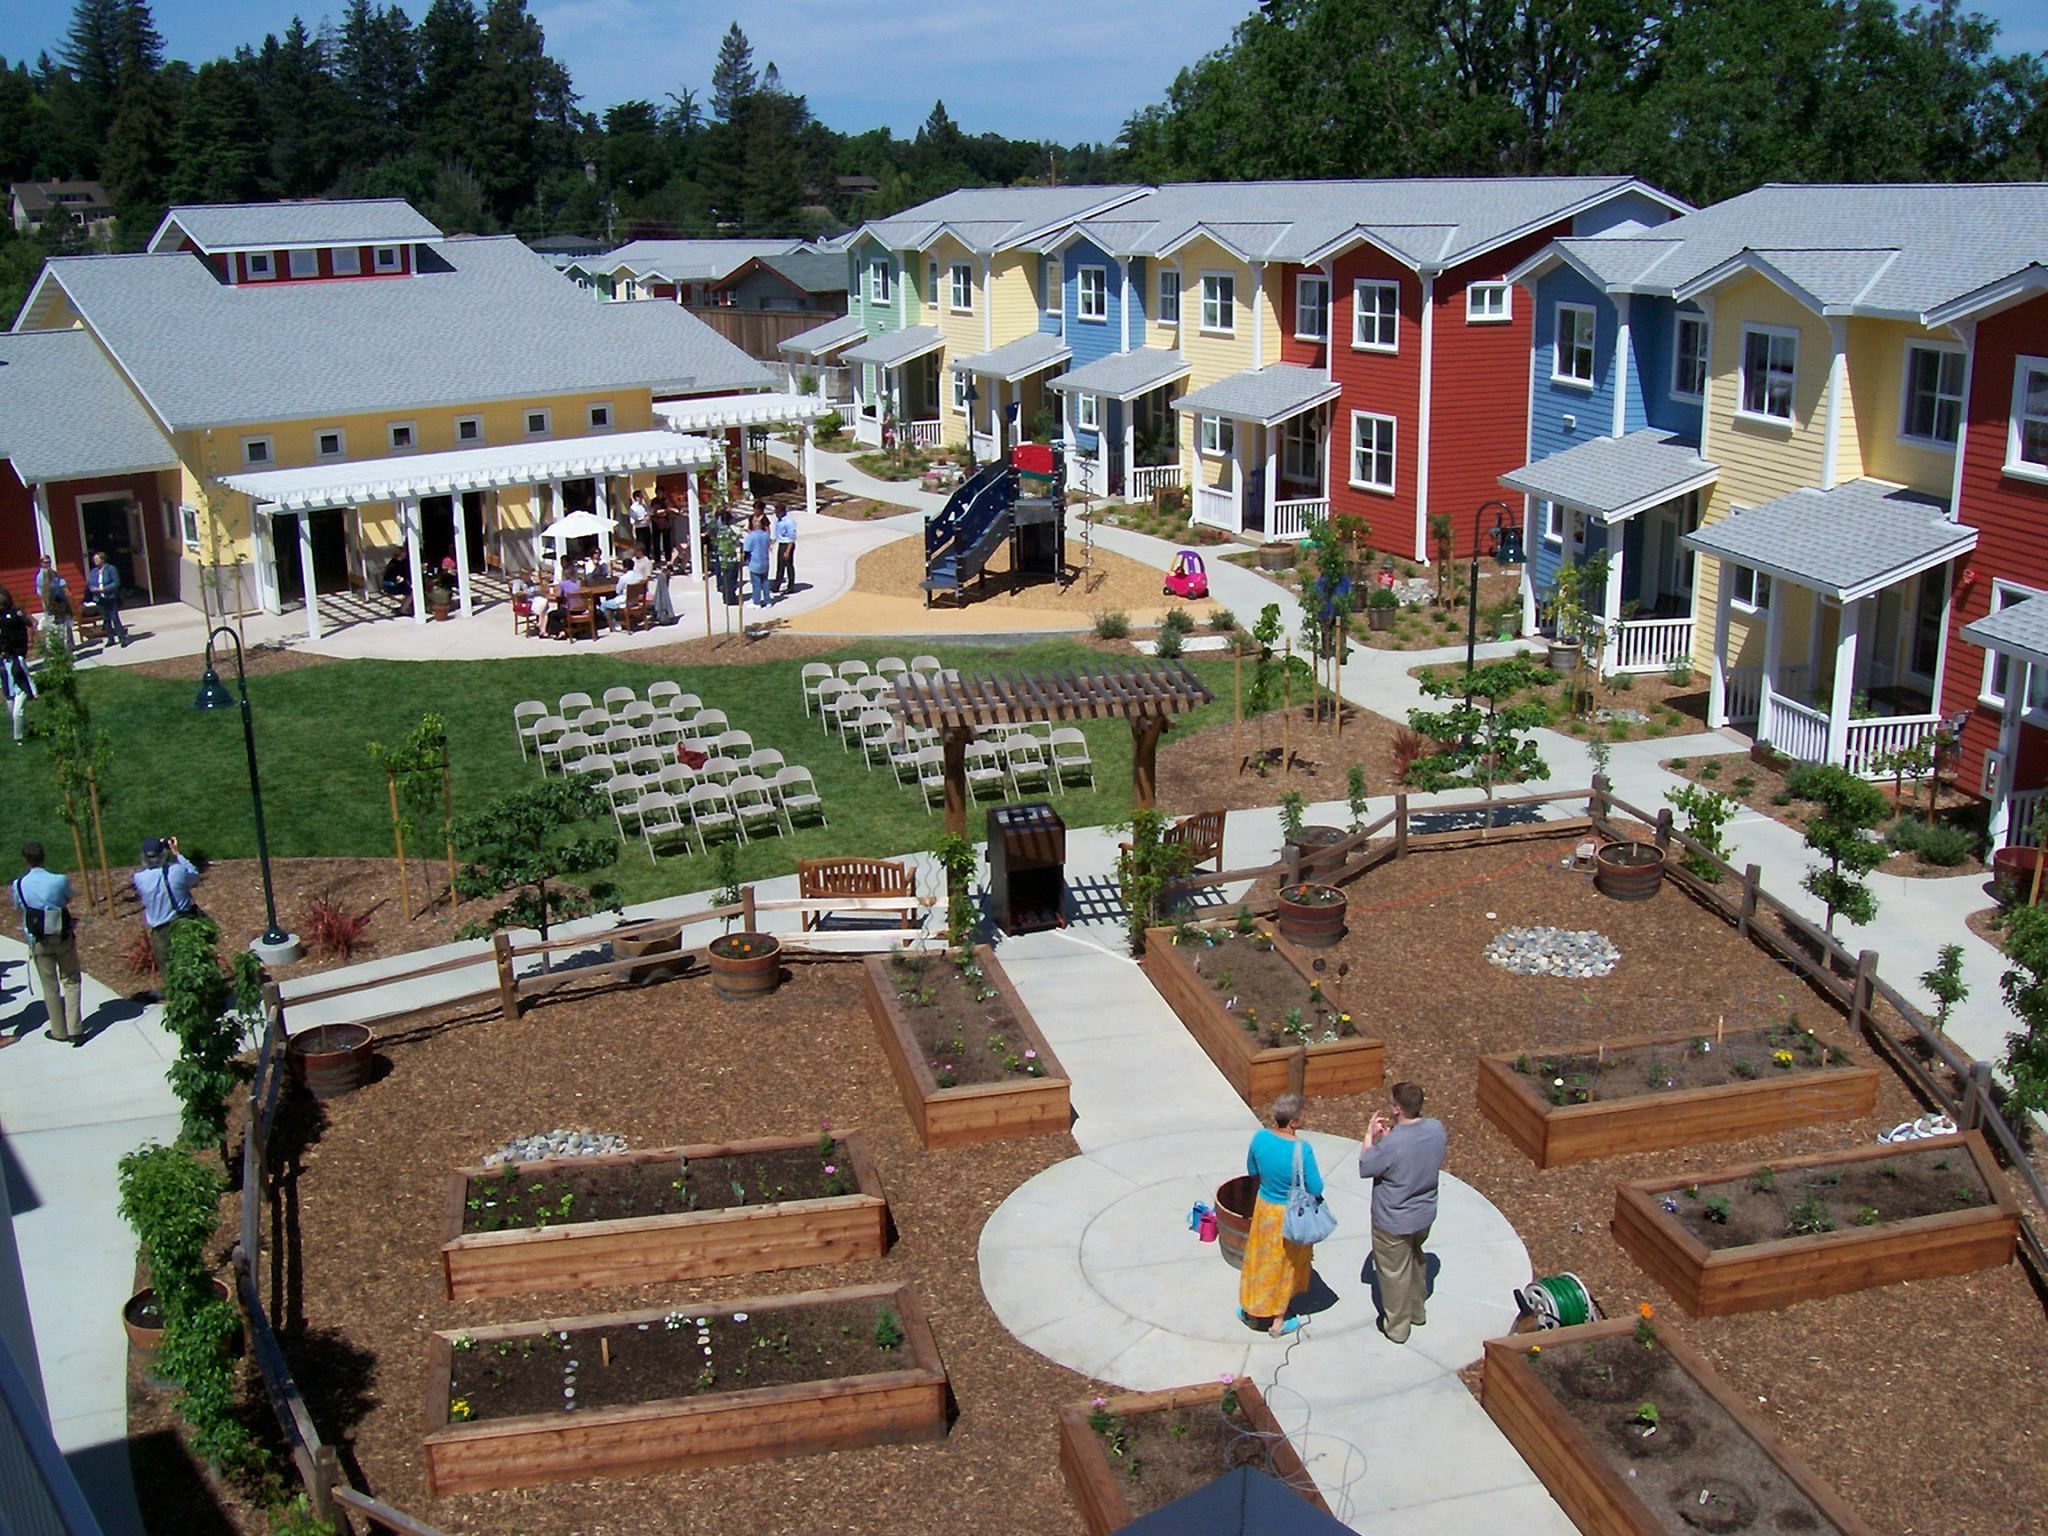 Cohousing Is An Innovative Approach To Housing Where Private Homes Are Clustered Around Extensive C Tiny House Community Tiny House Village Pocket Neighborhood